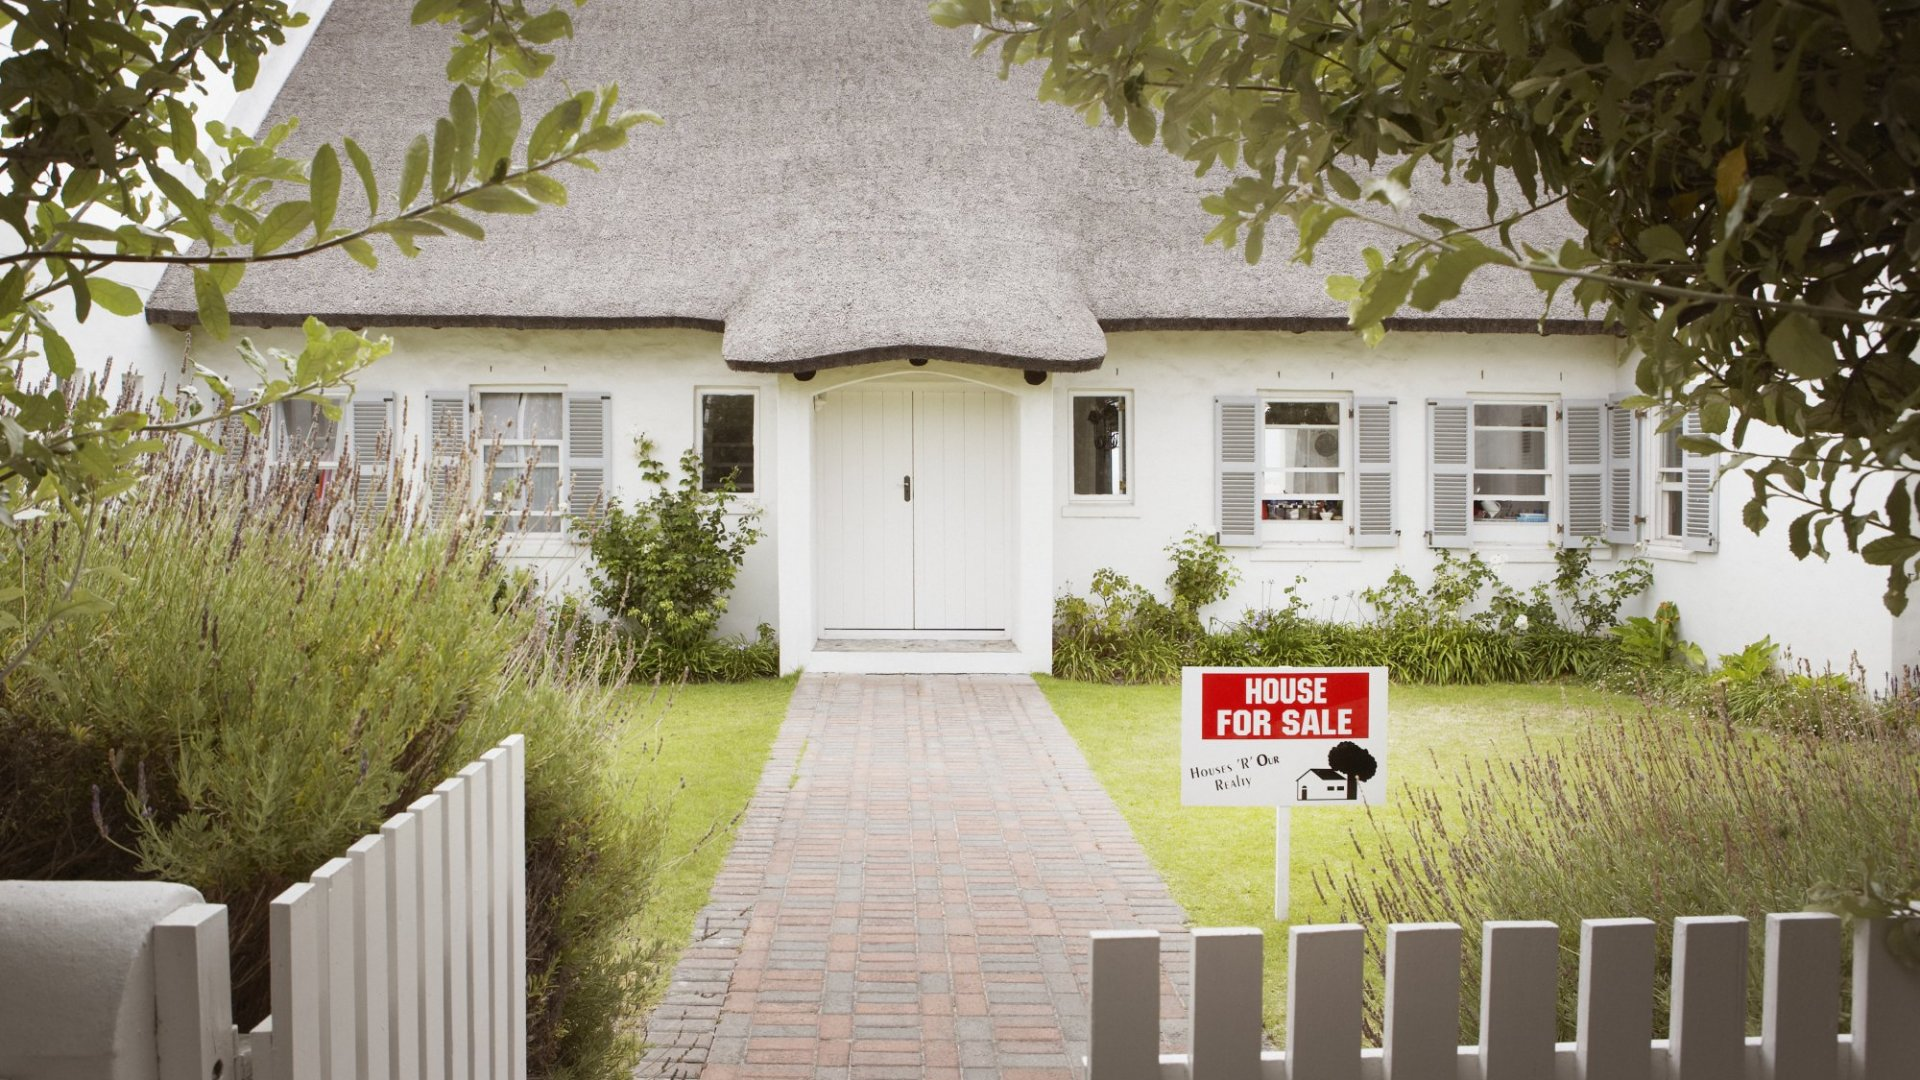 Millennials Aren't Buying Homes. Here's Why